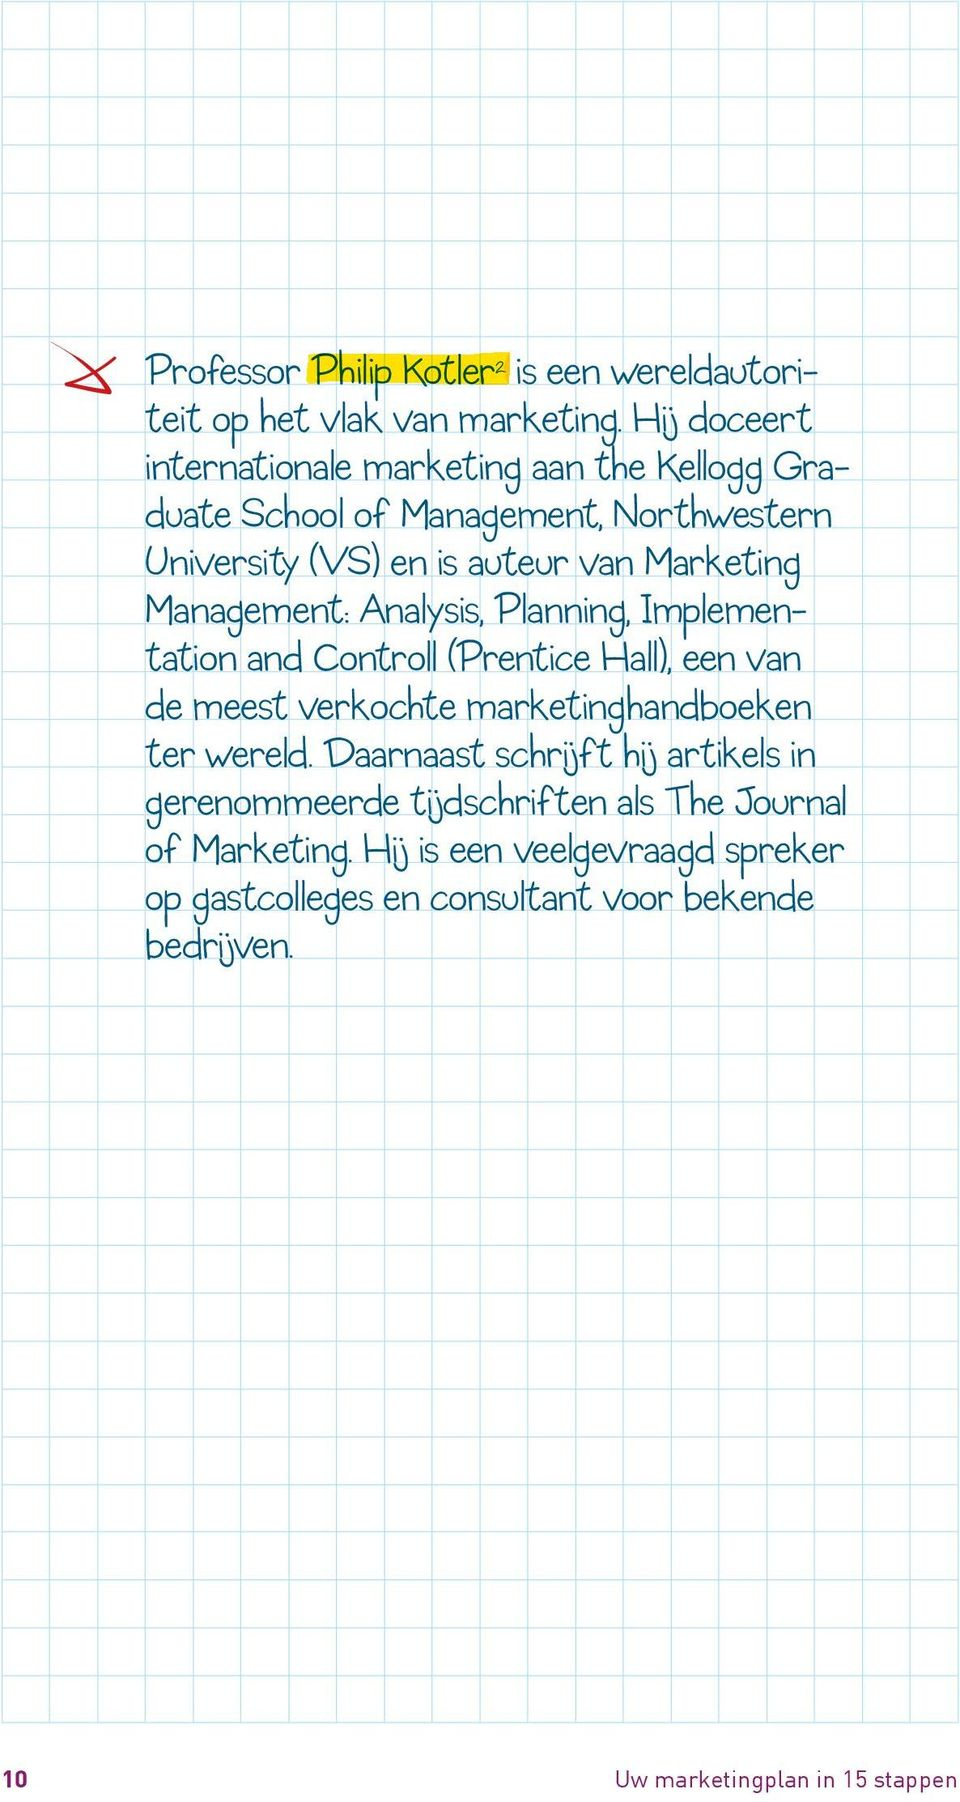 Management: Analysis, Planning, Implementation and Controll (Prentice Hall), een van de meest verkochte marketinghandboeken ter wereld.